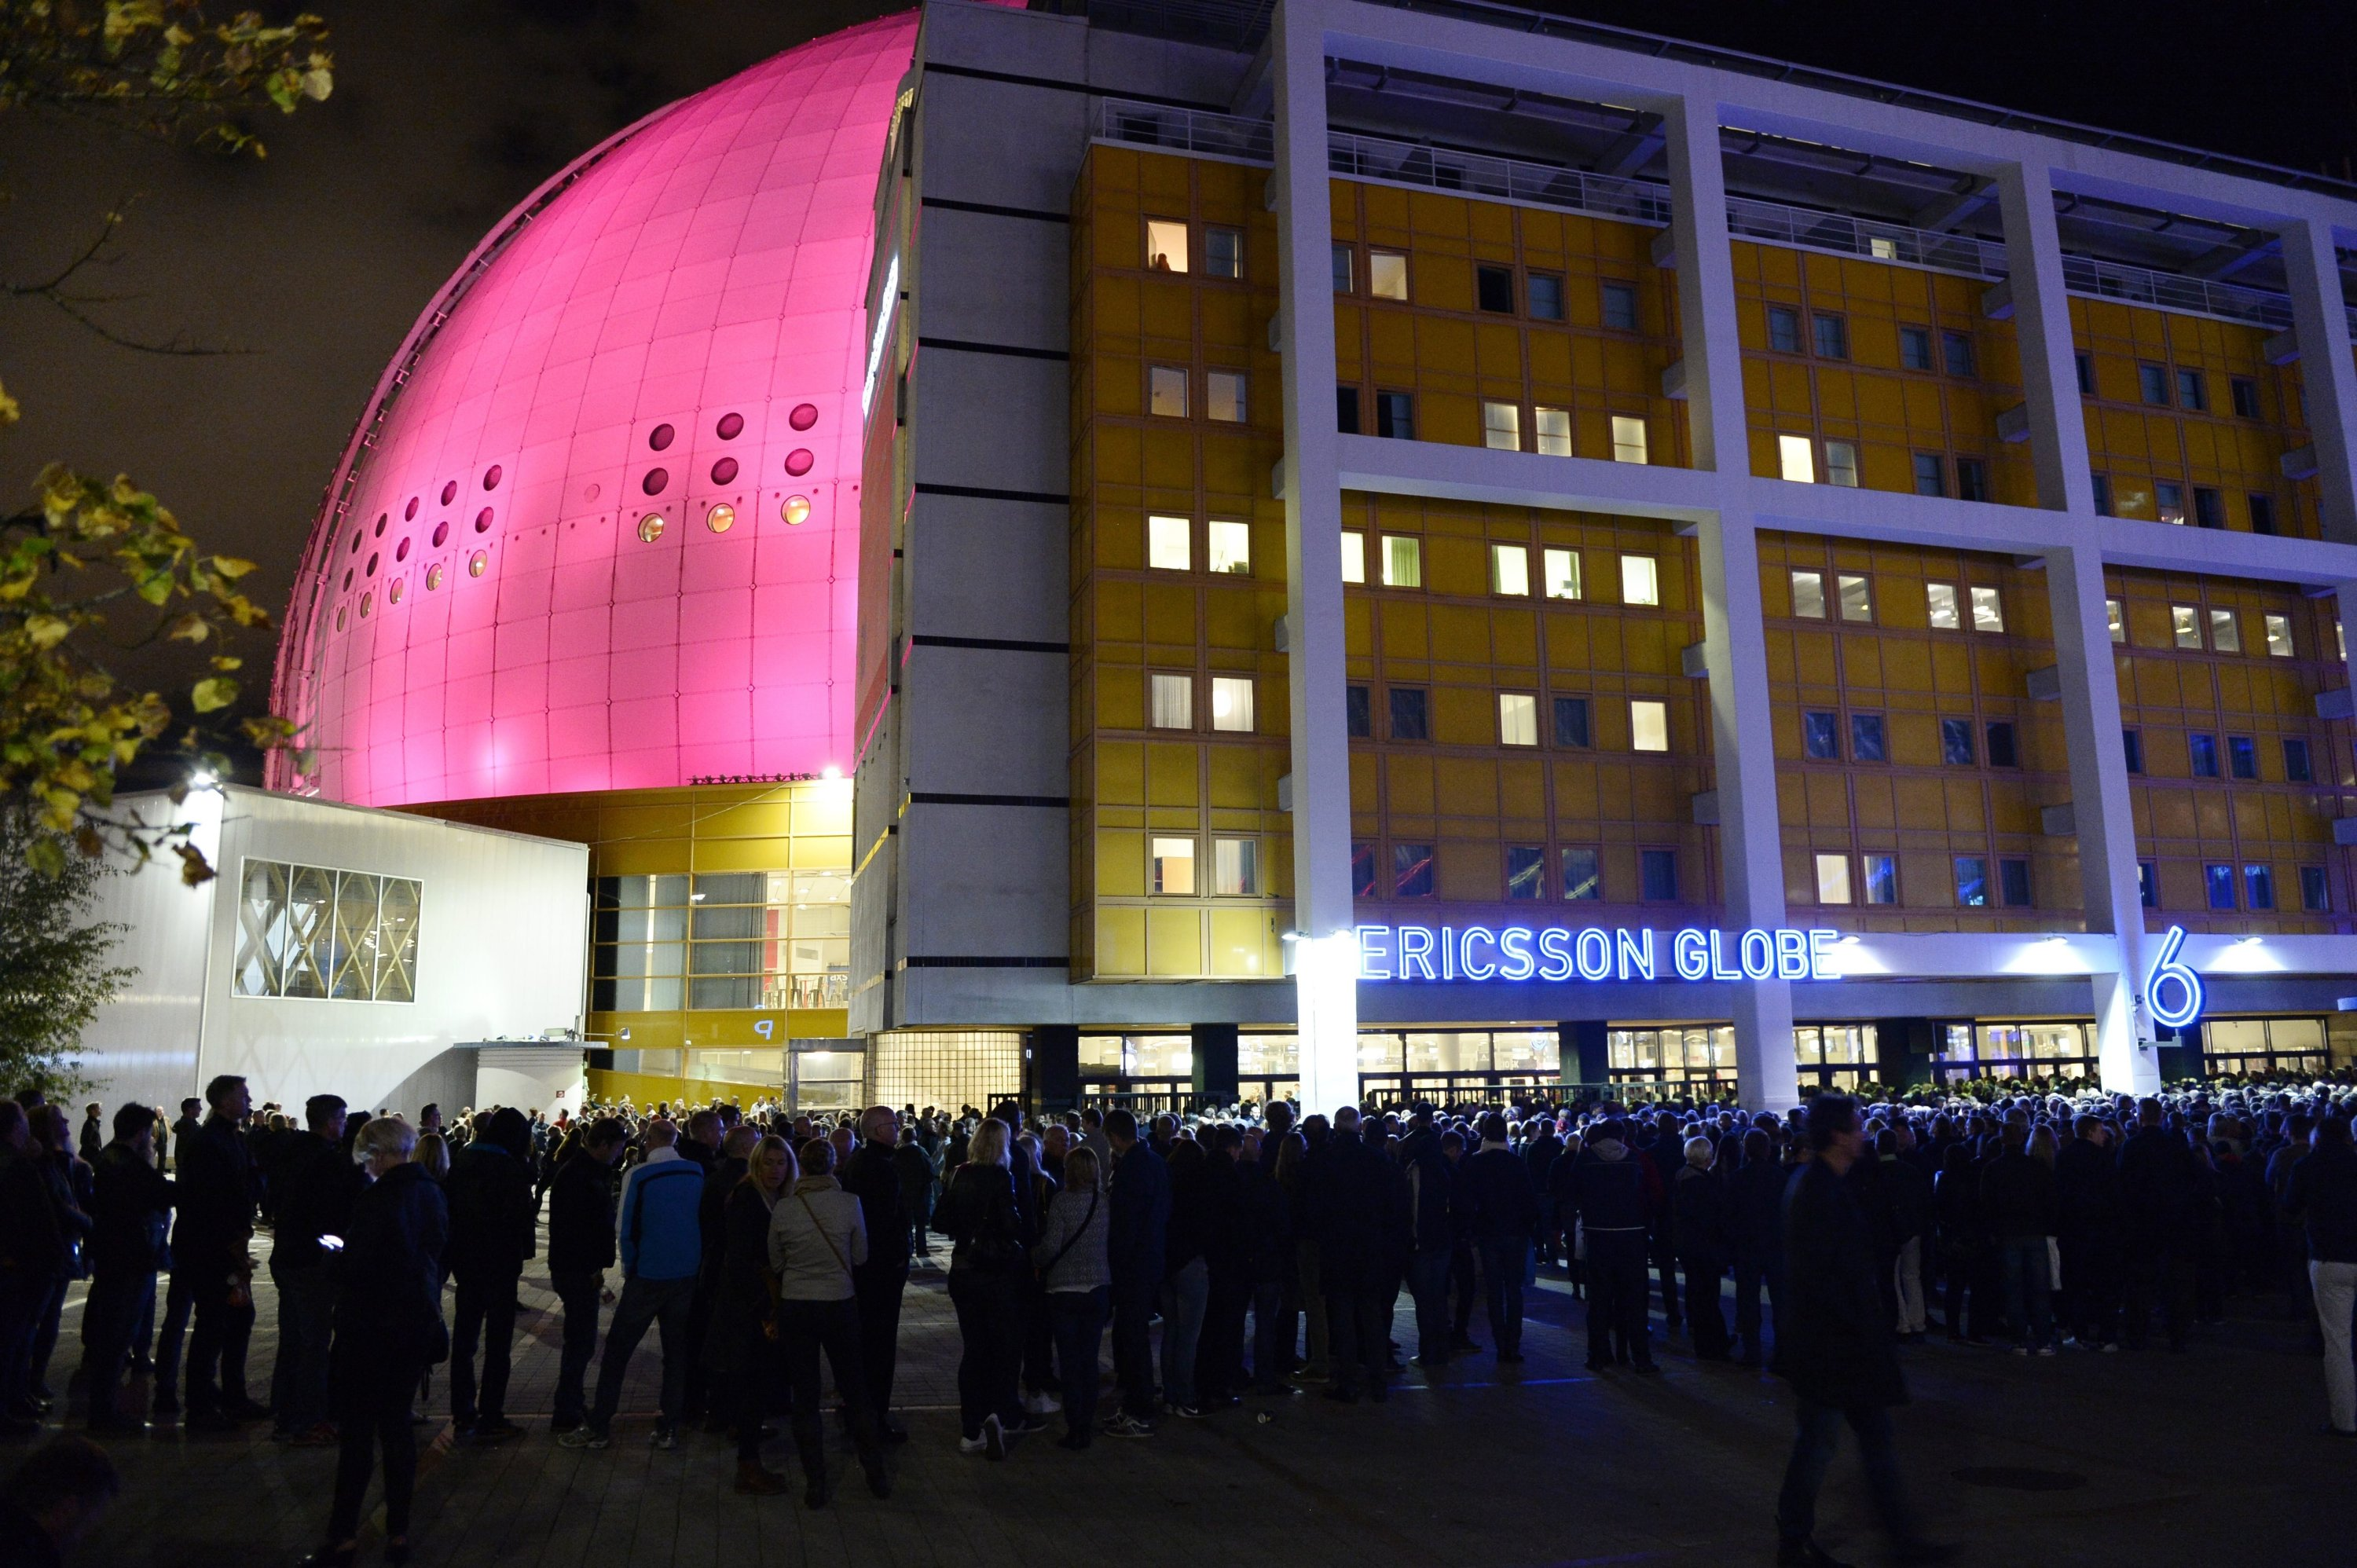 People queue outside the Globe Arena for a U2 concert in Stockholm, Sweden, Sept. 21, 2015. (AP File Photo)